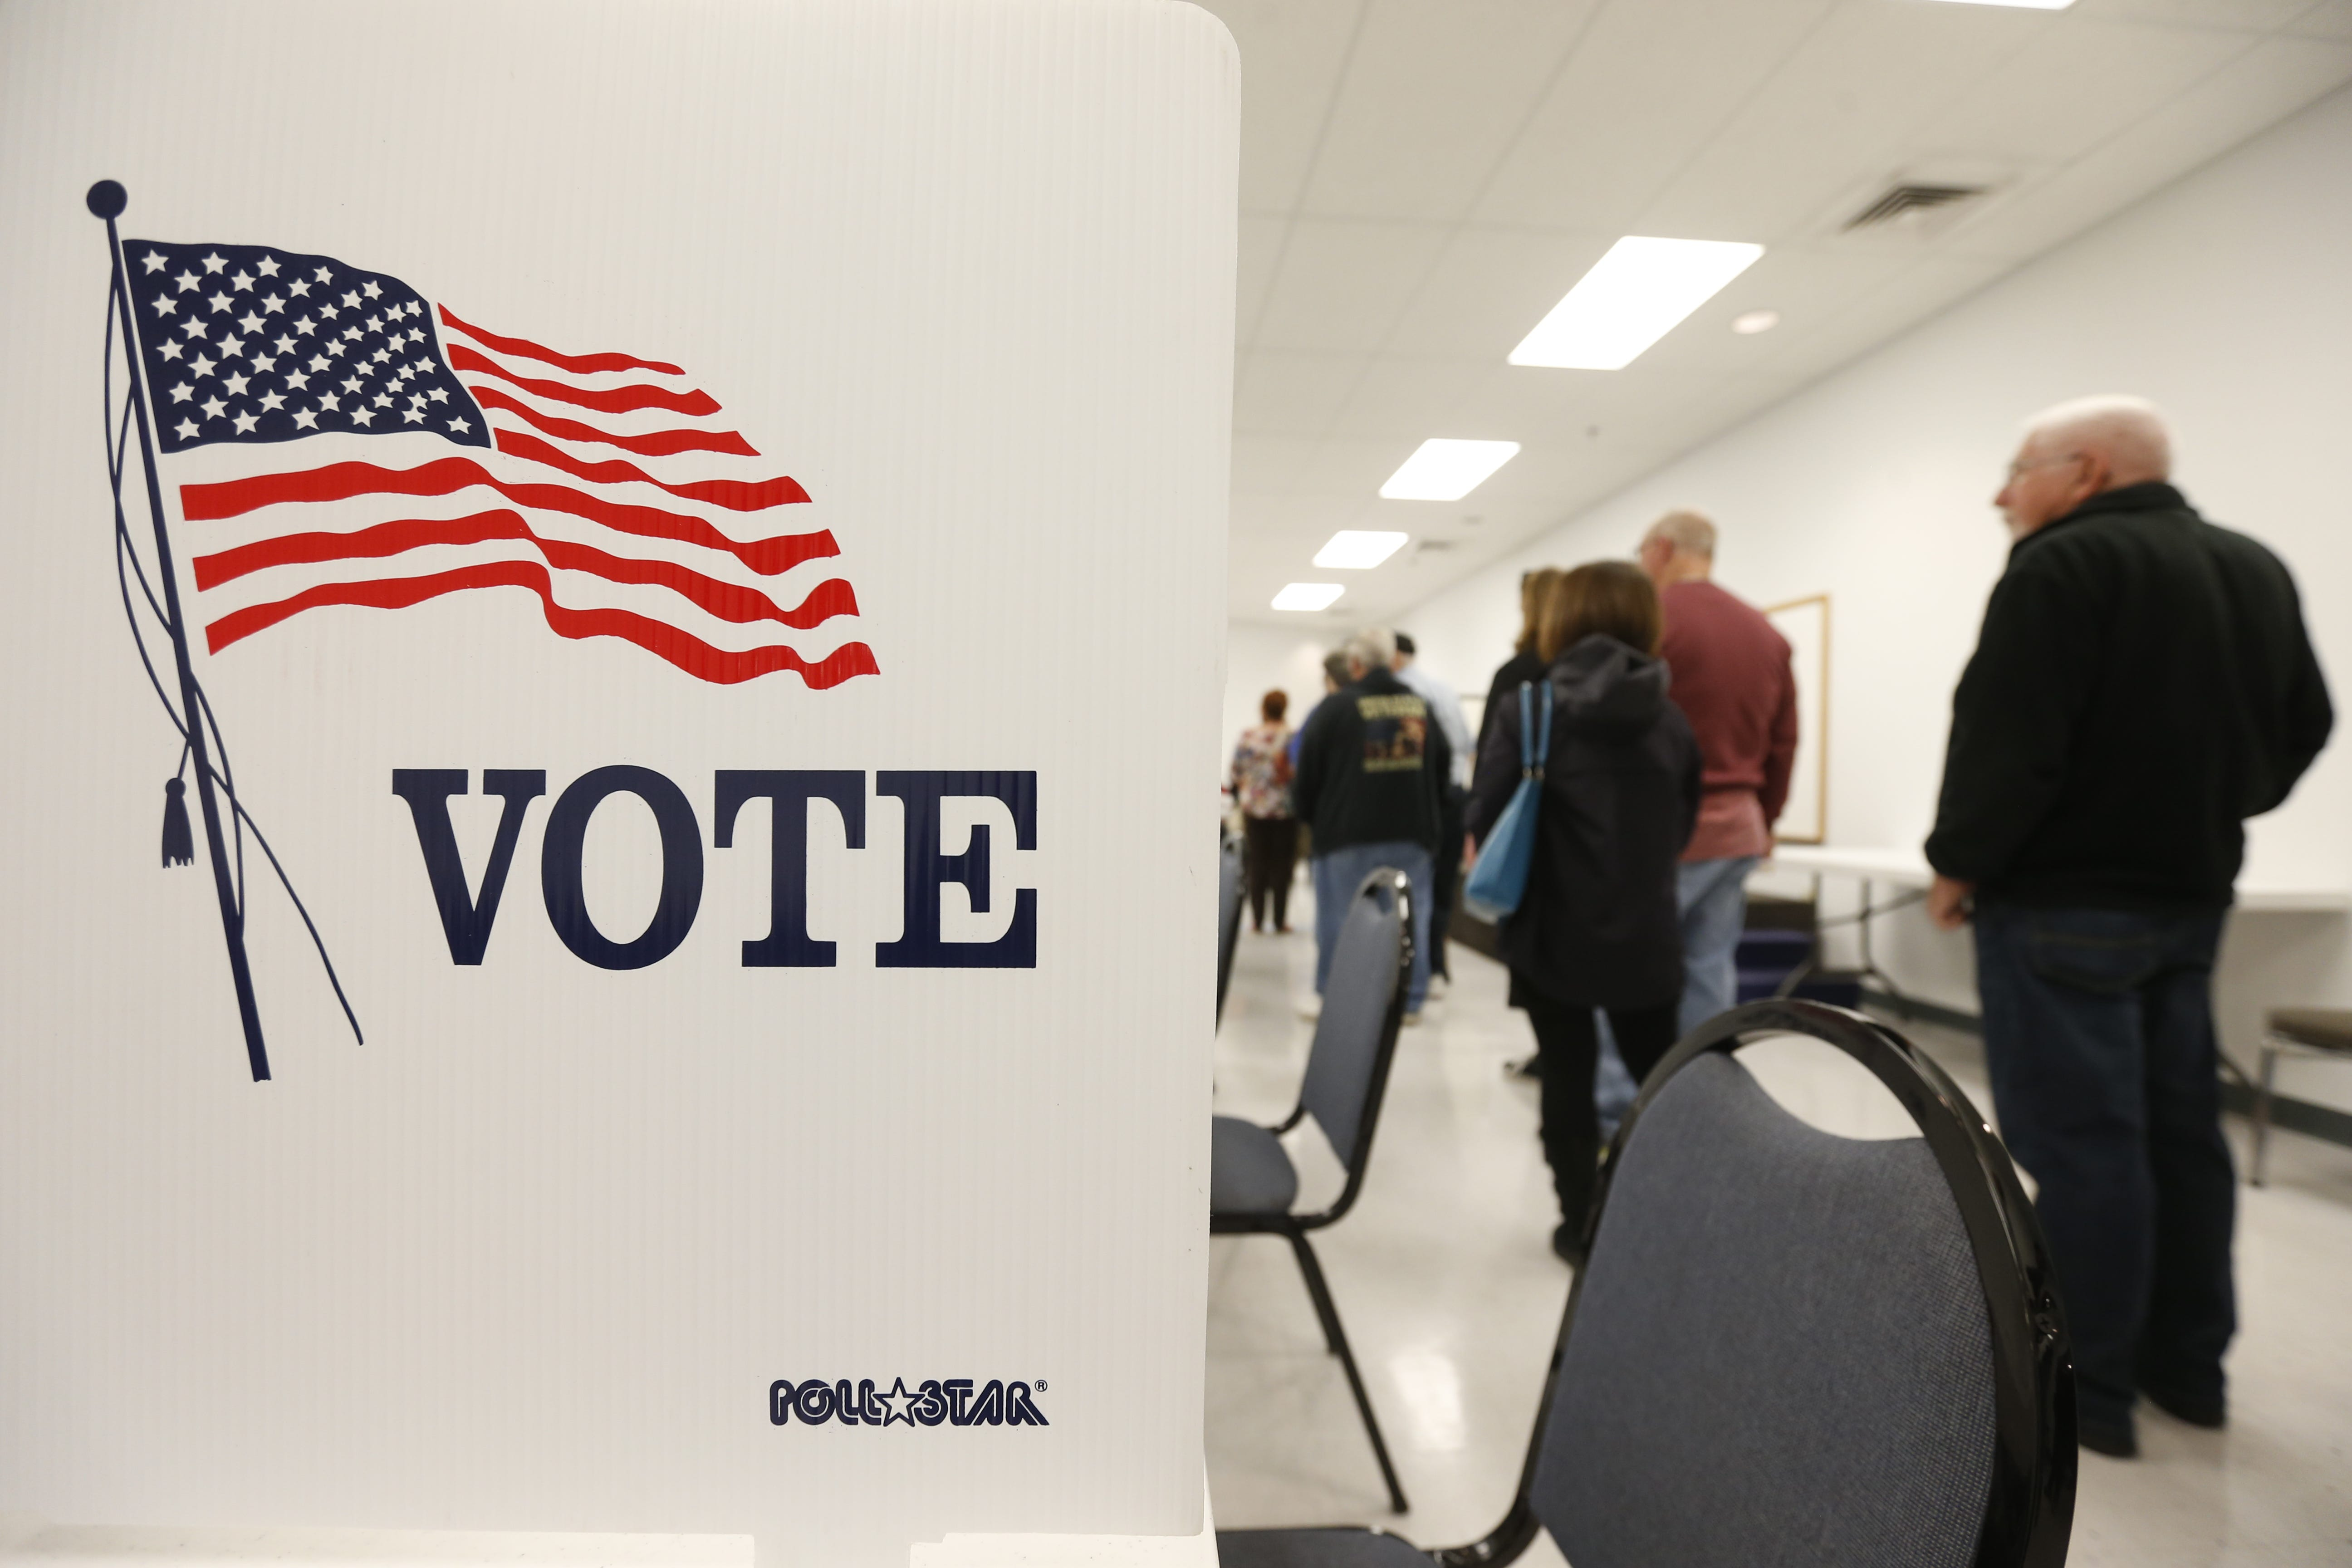 Today is election day for some voters in greene county | kbia.